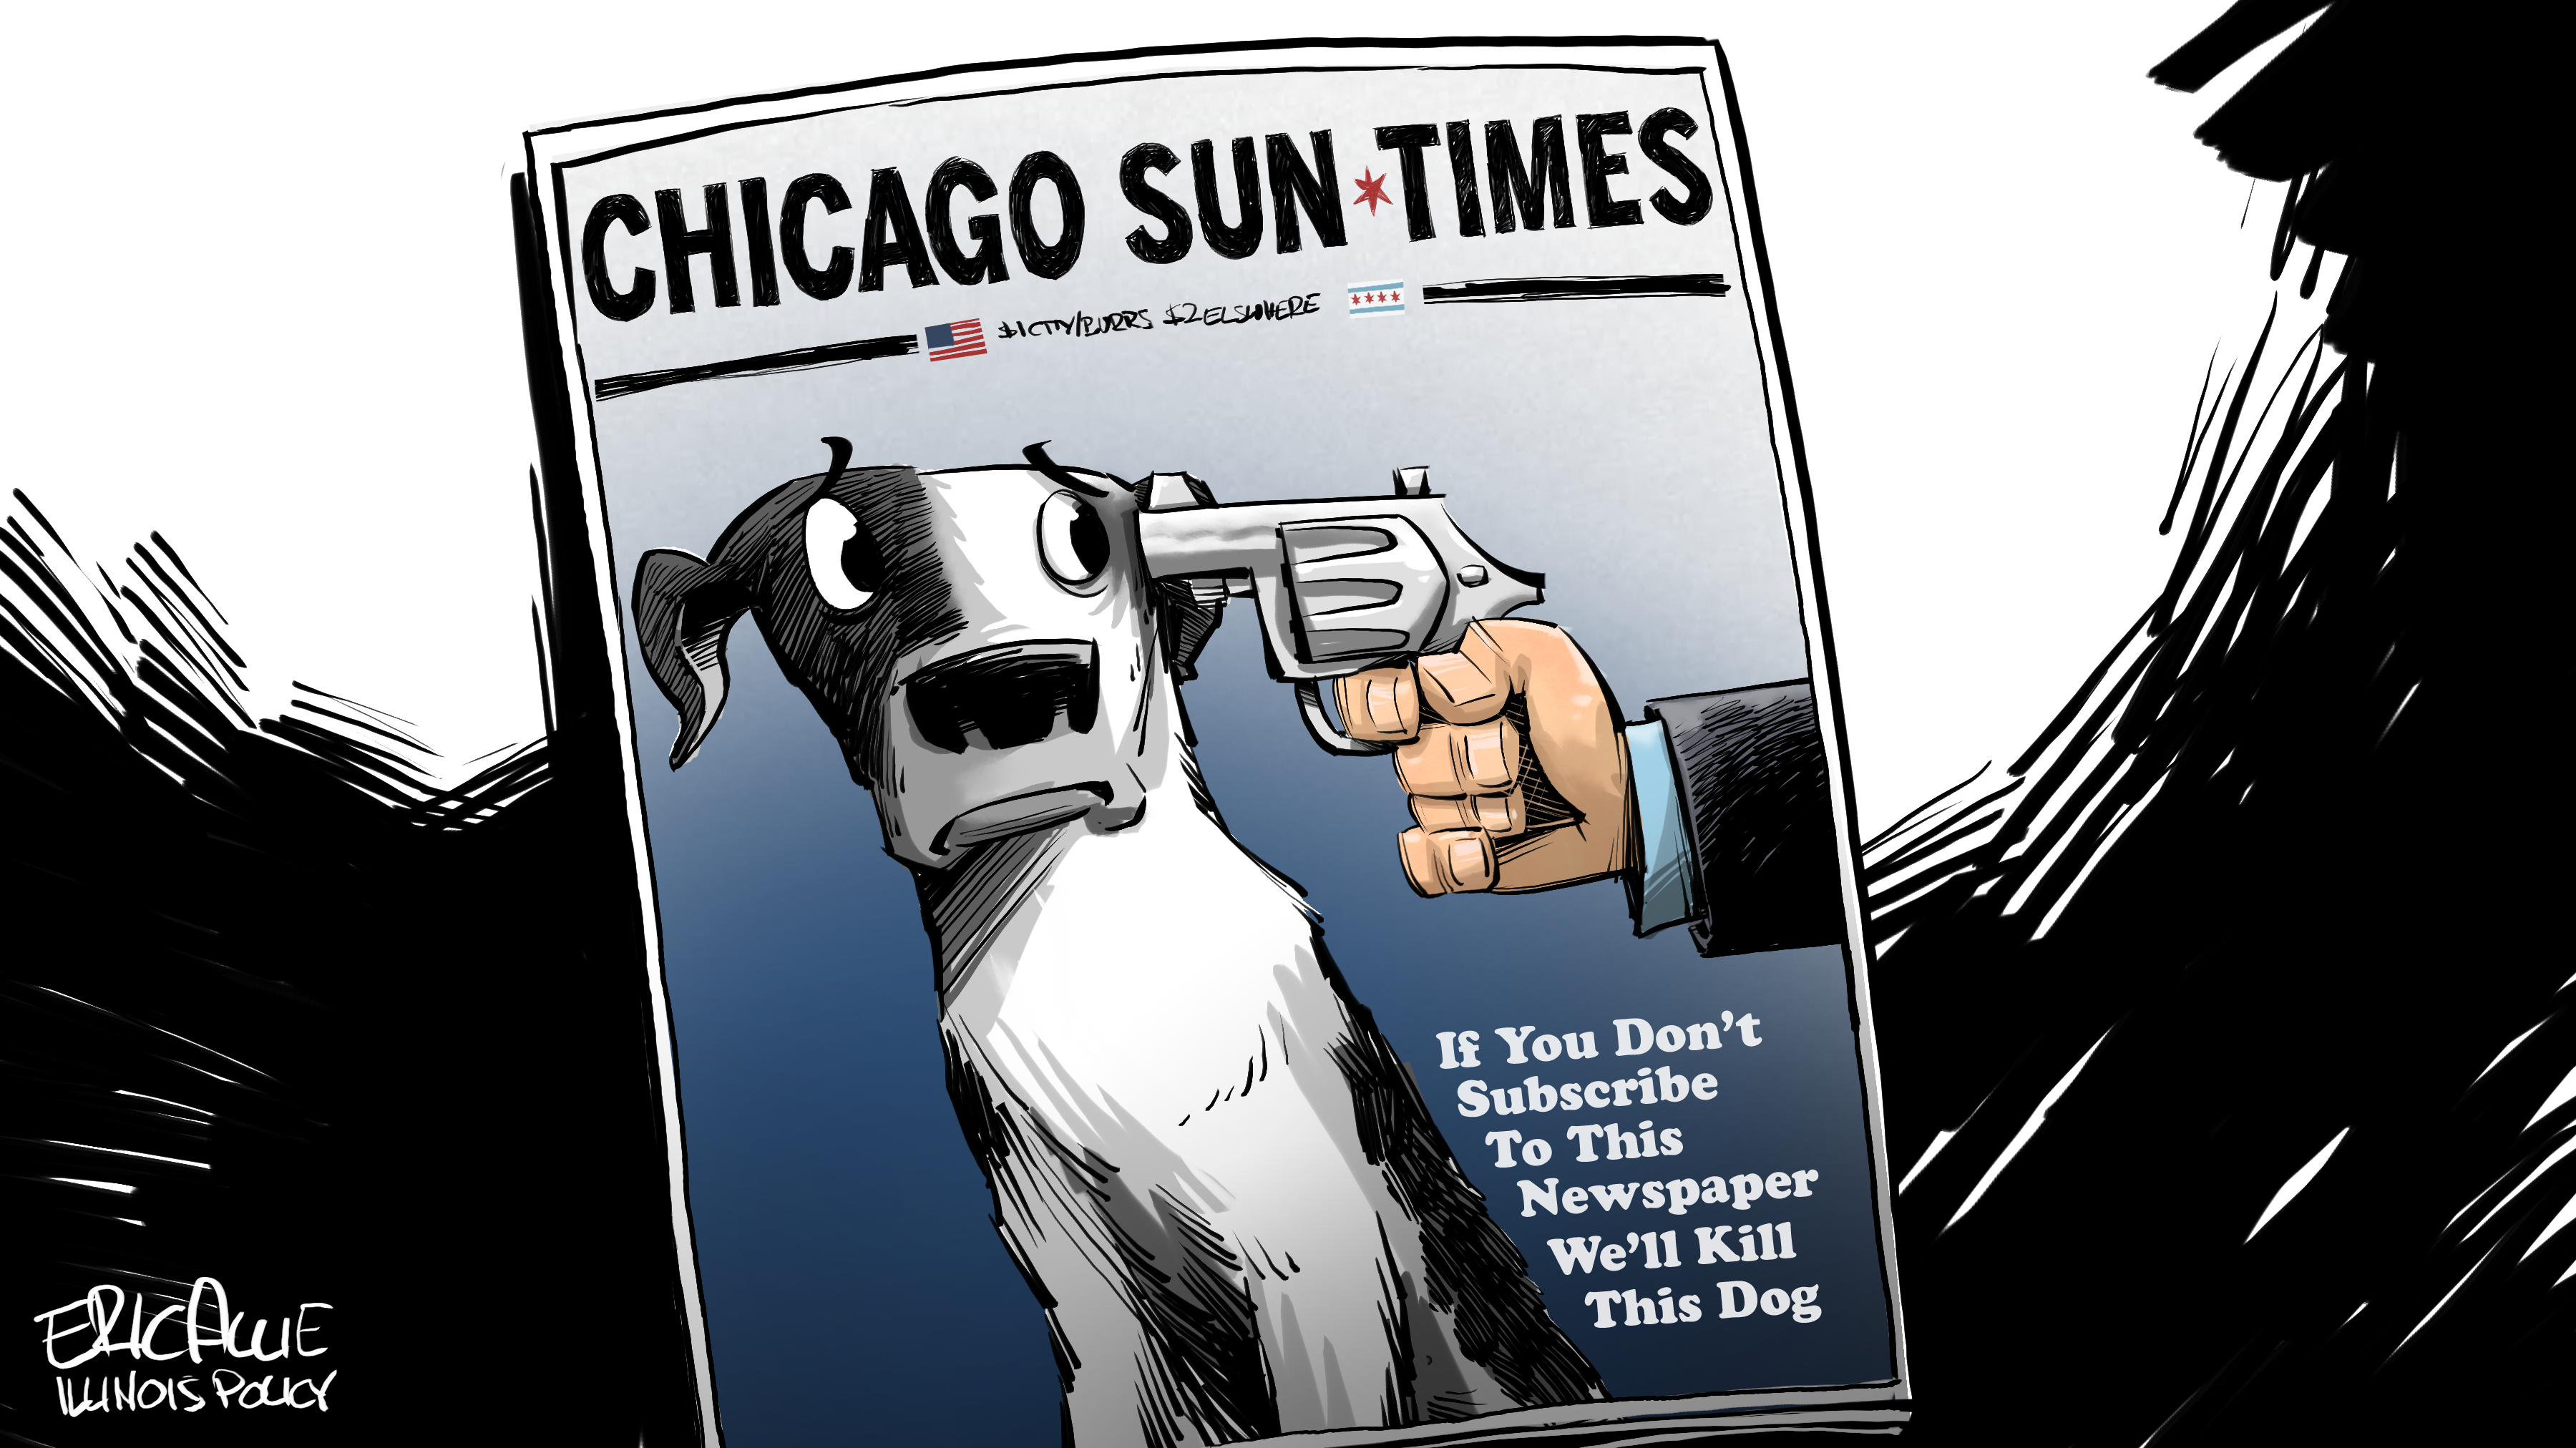 national lampoon cover chicago sun-times if you don't subscribe we'll kill this dog